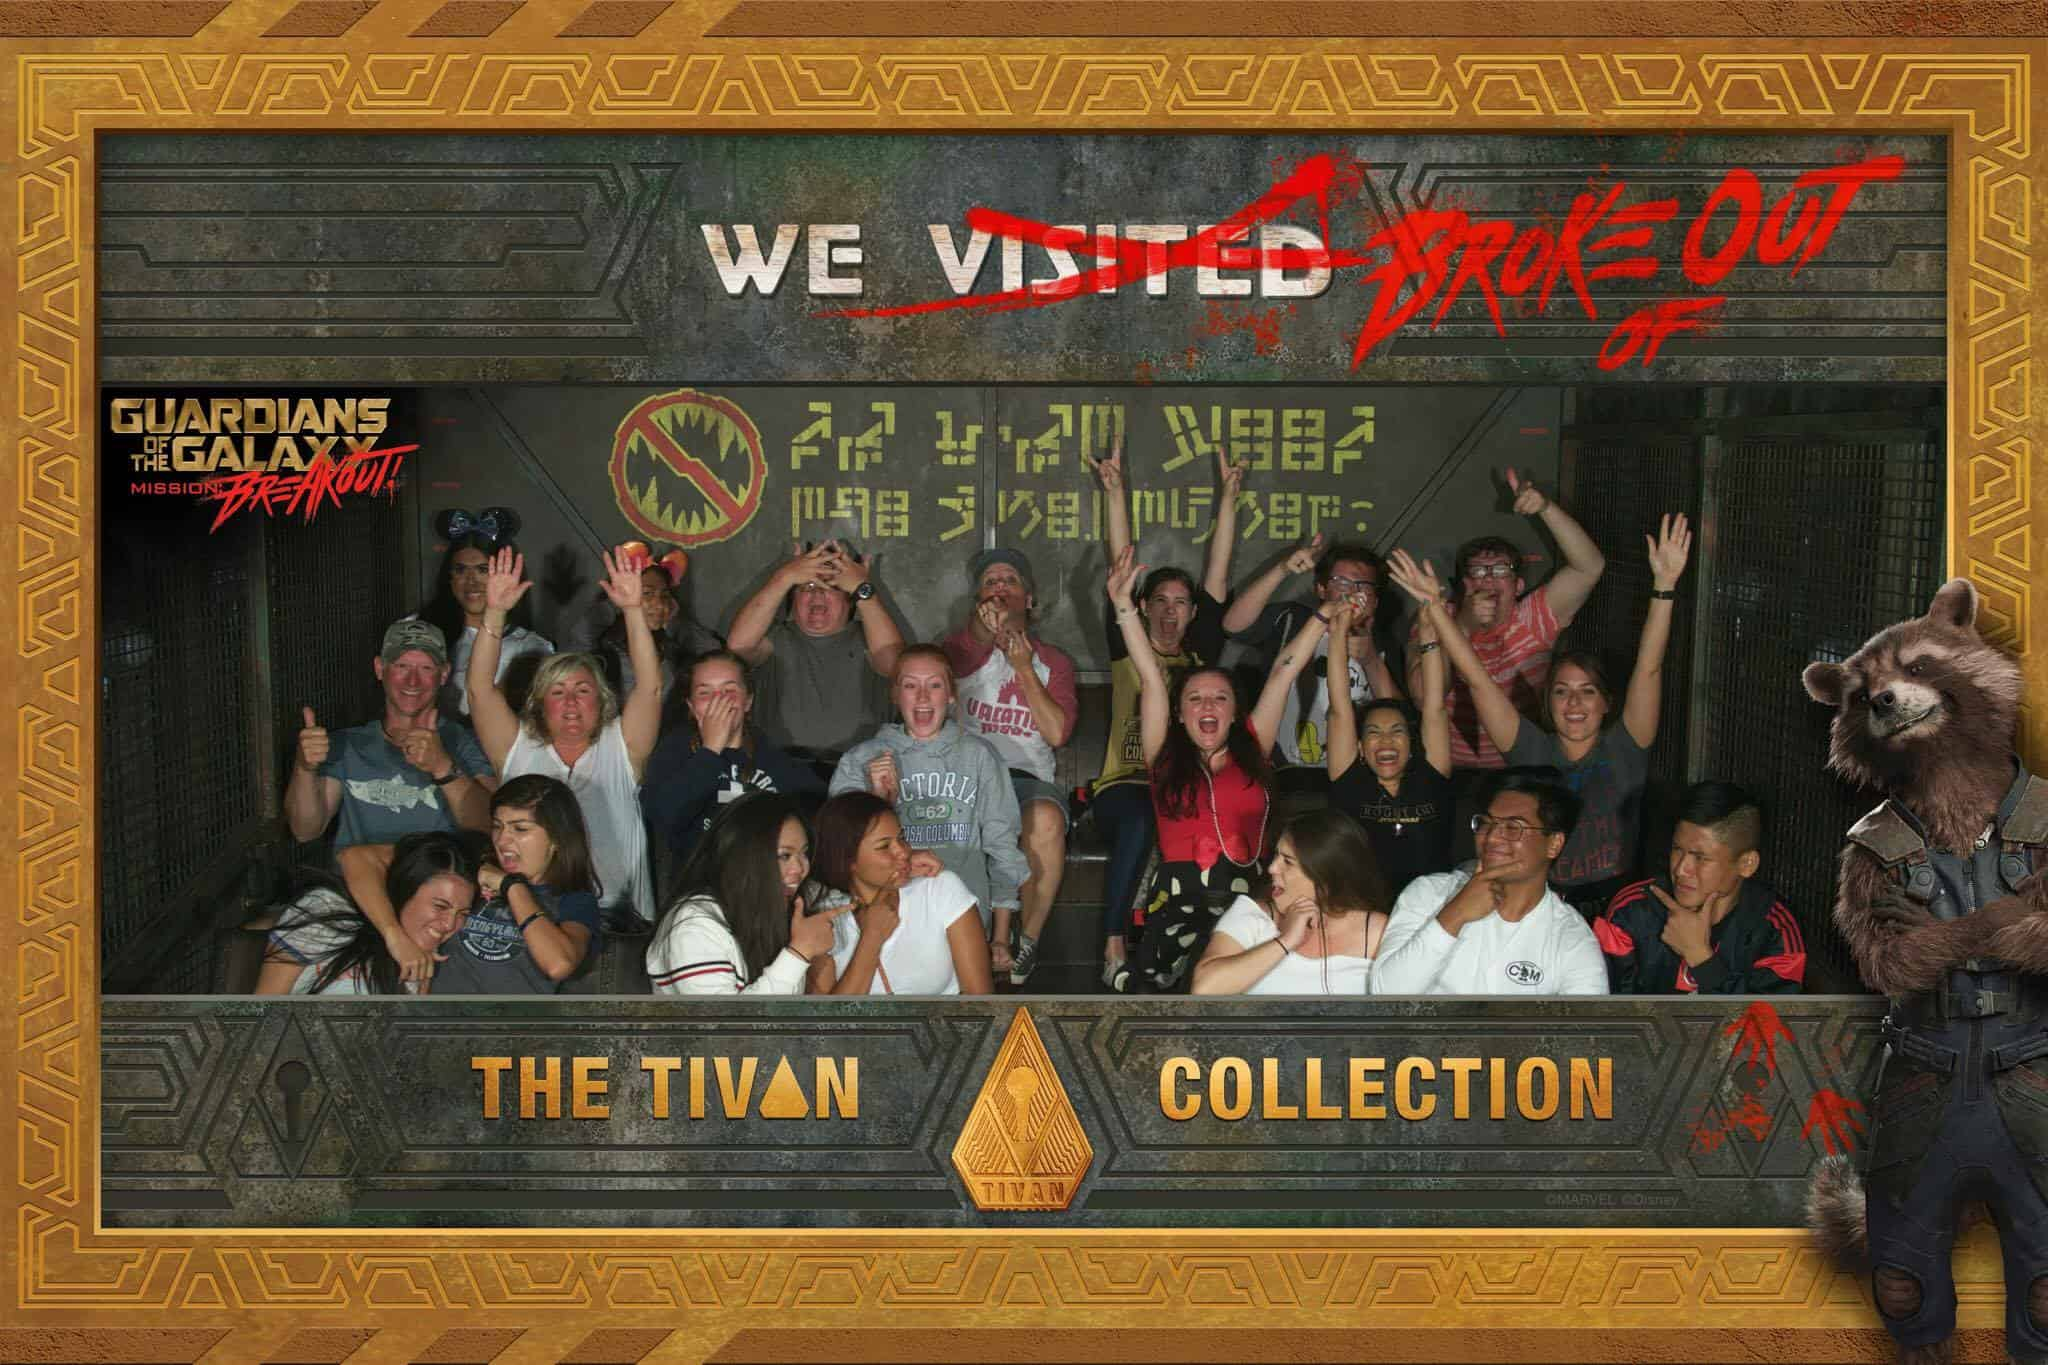 D23 Expo trip to Disneyland - Experiencing Summer Of Heroes - Guardian of the Galaxy - Mission: Breakout!